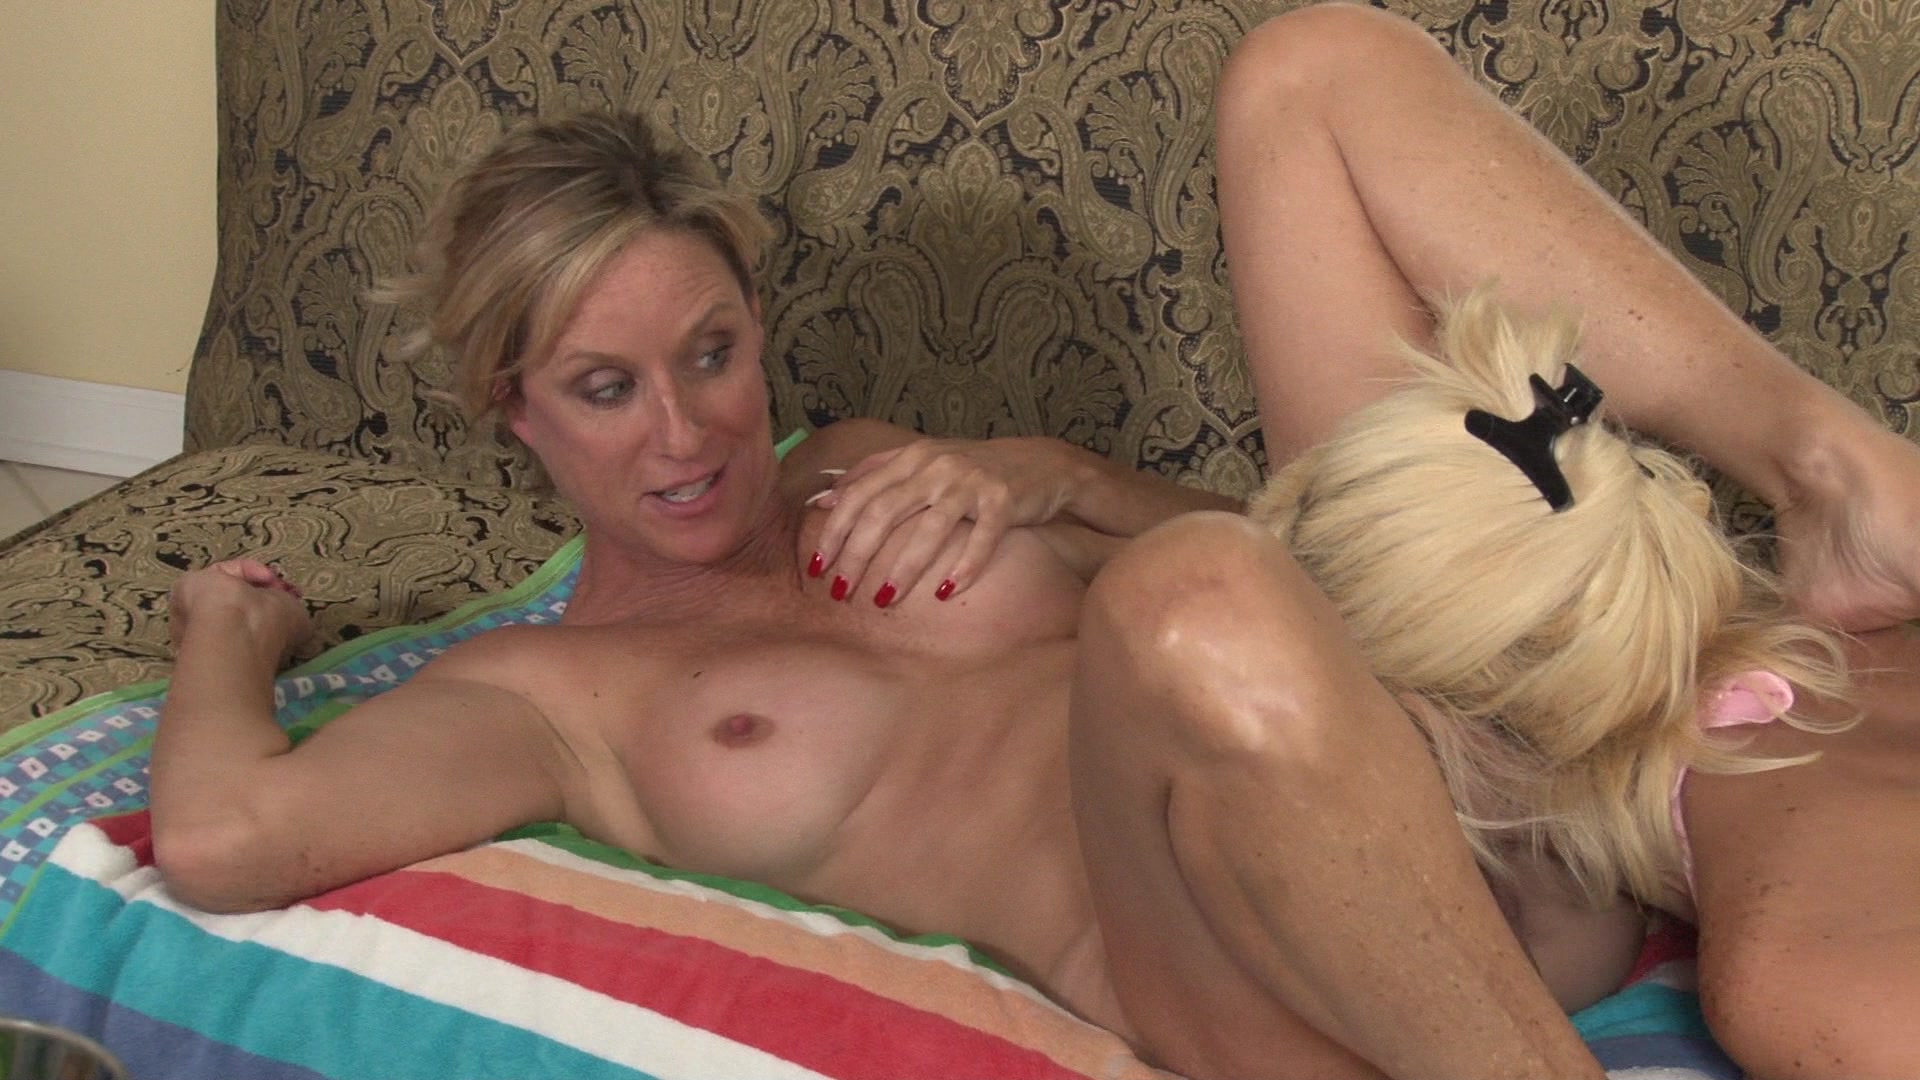 Two milfs licking each other, anal no legs